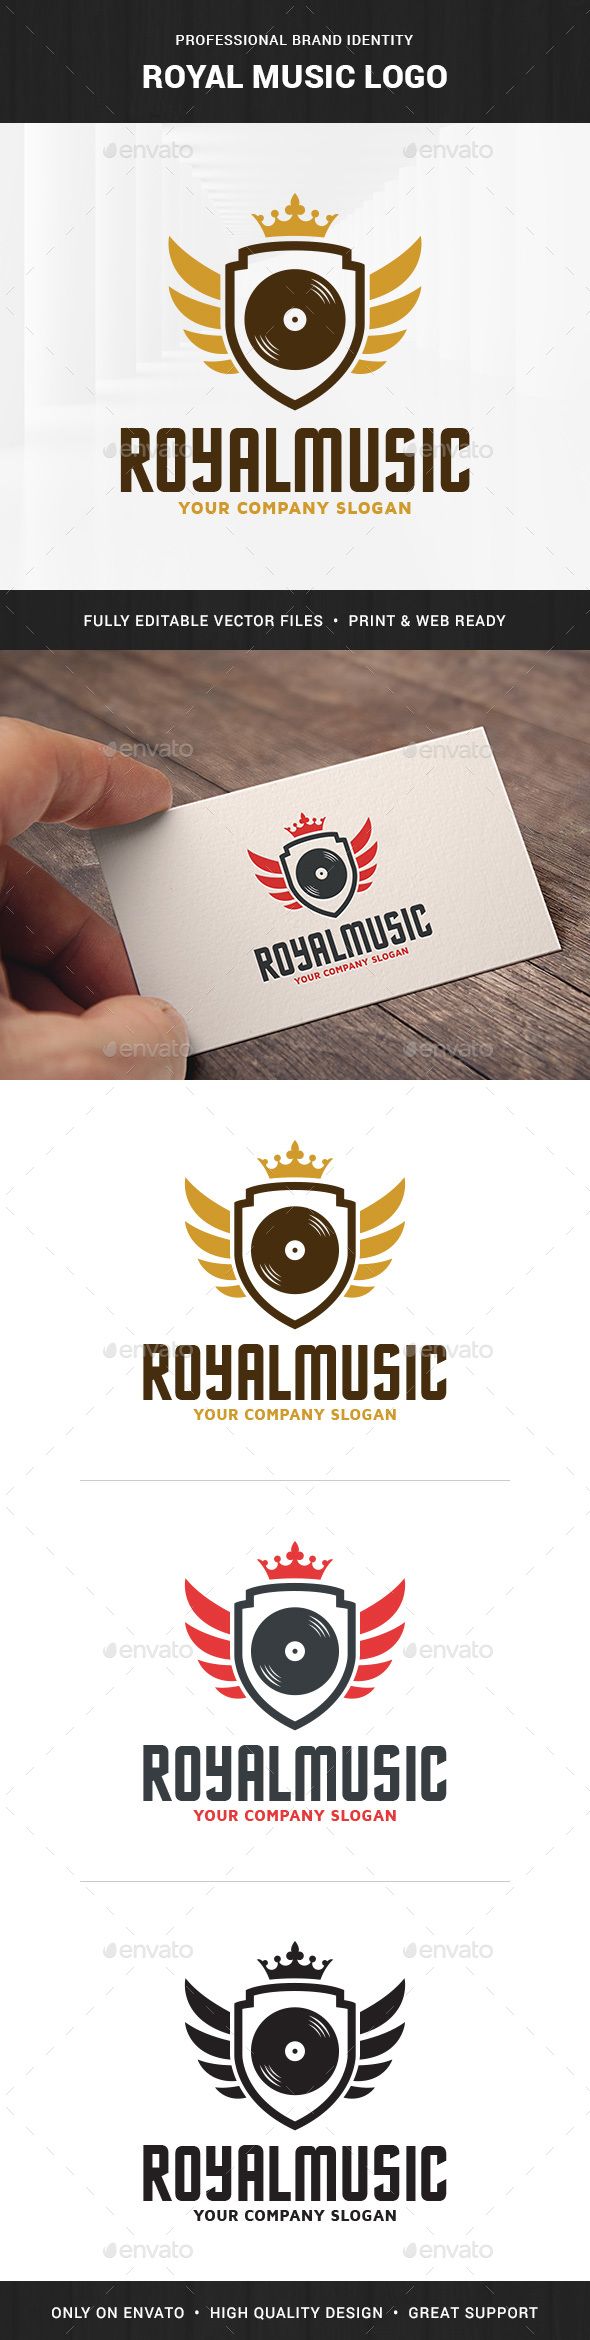 Royal Music Logo Template - Crests Logo Templates